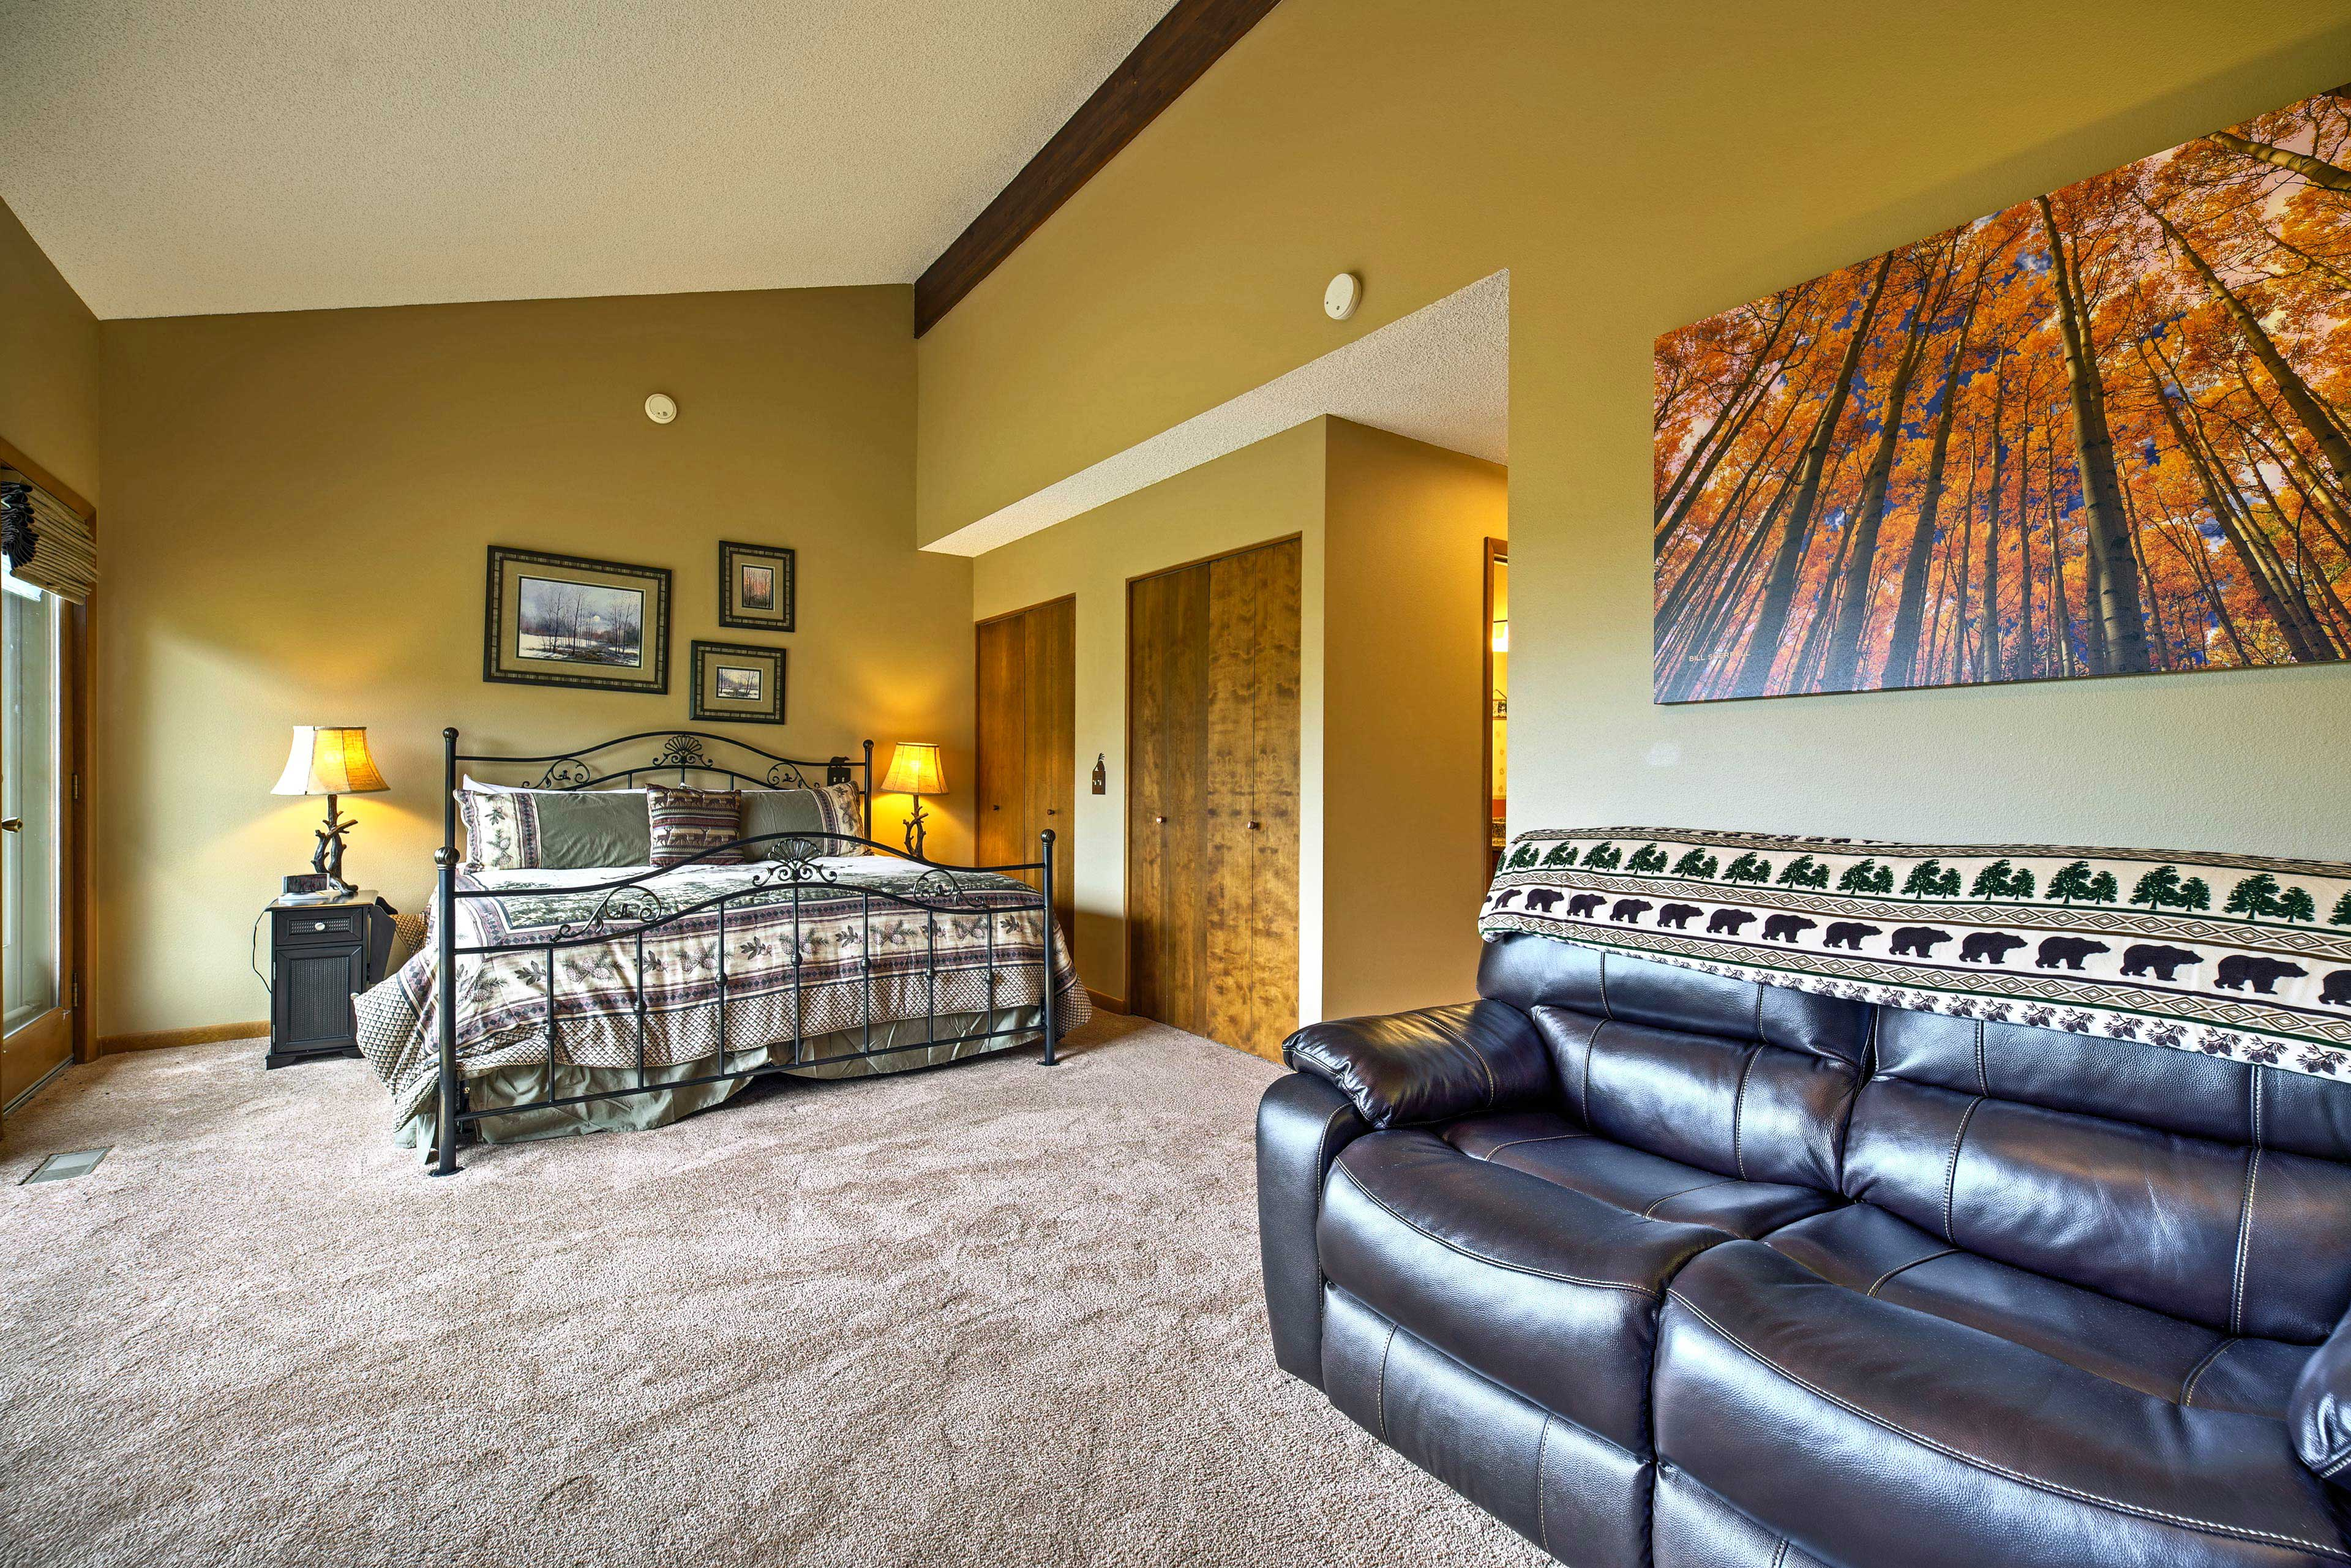 The master bedroom has a comfortable love seat in front of the fireplace.